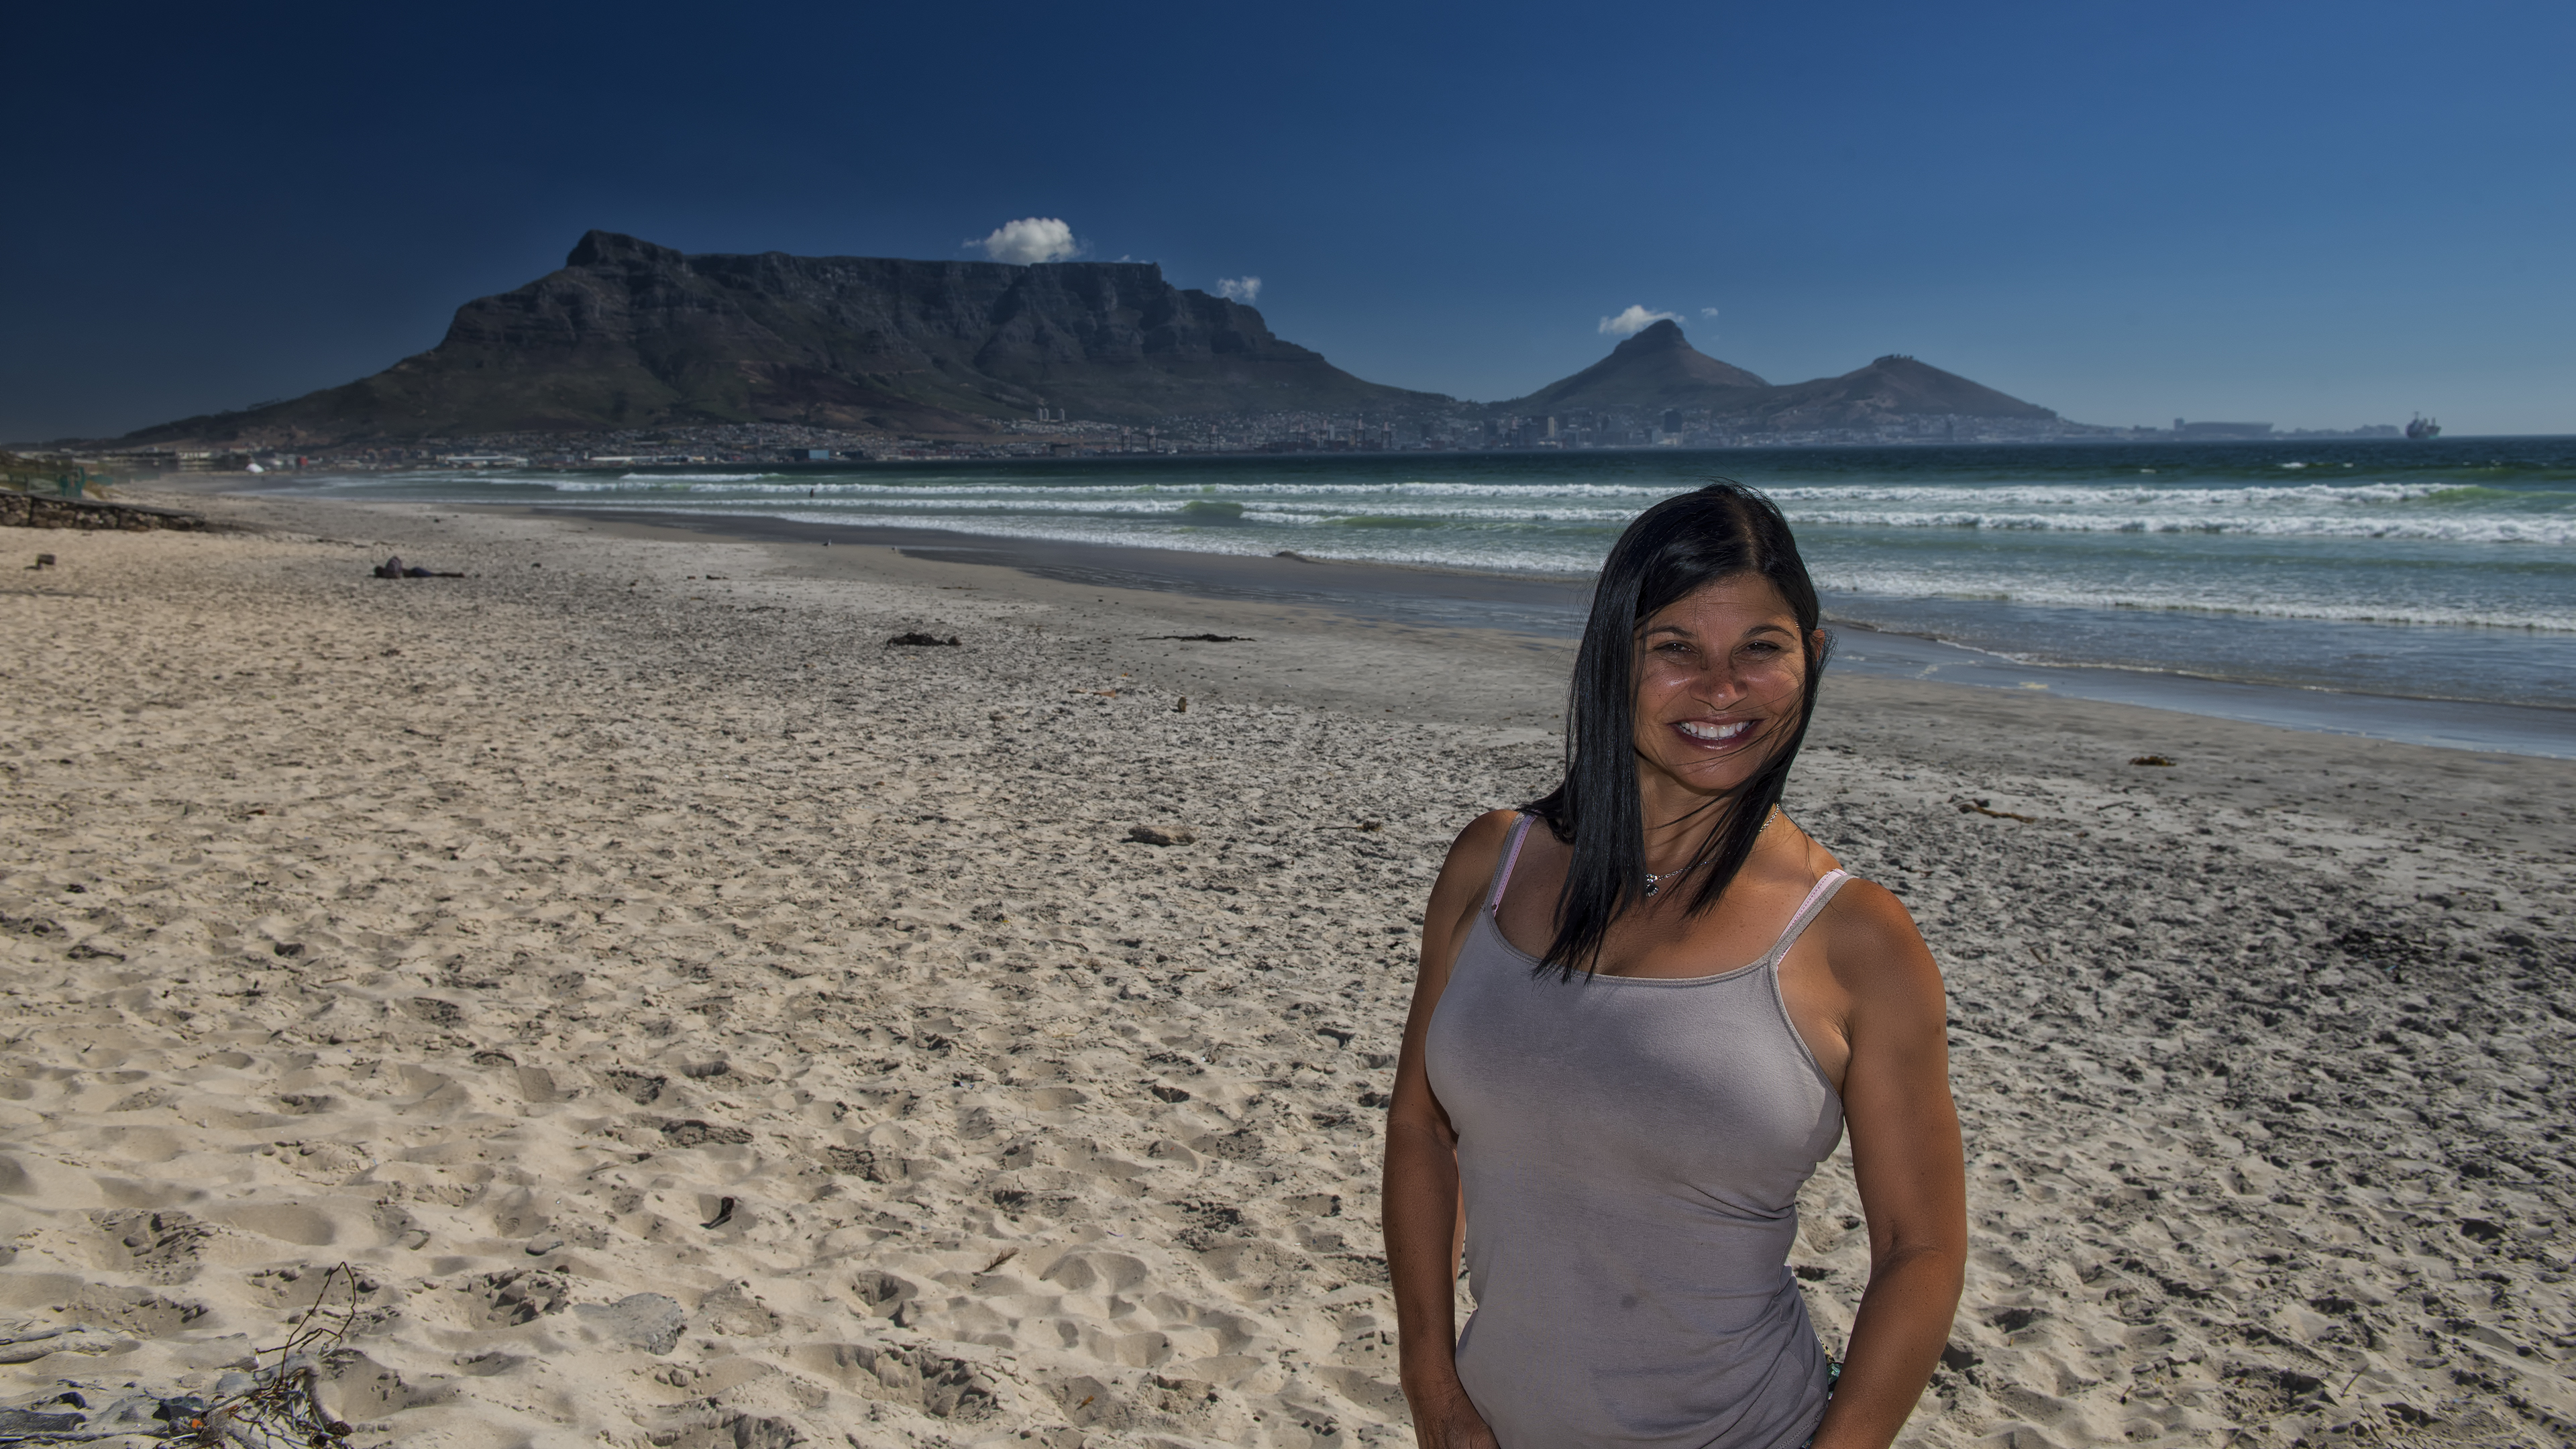 UHD_SouthAfrica_CapeTown_DRJ2498_